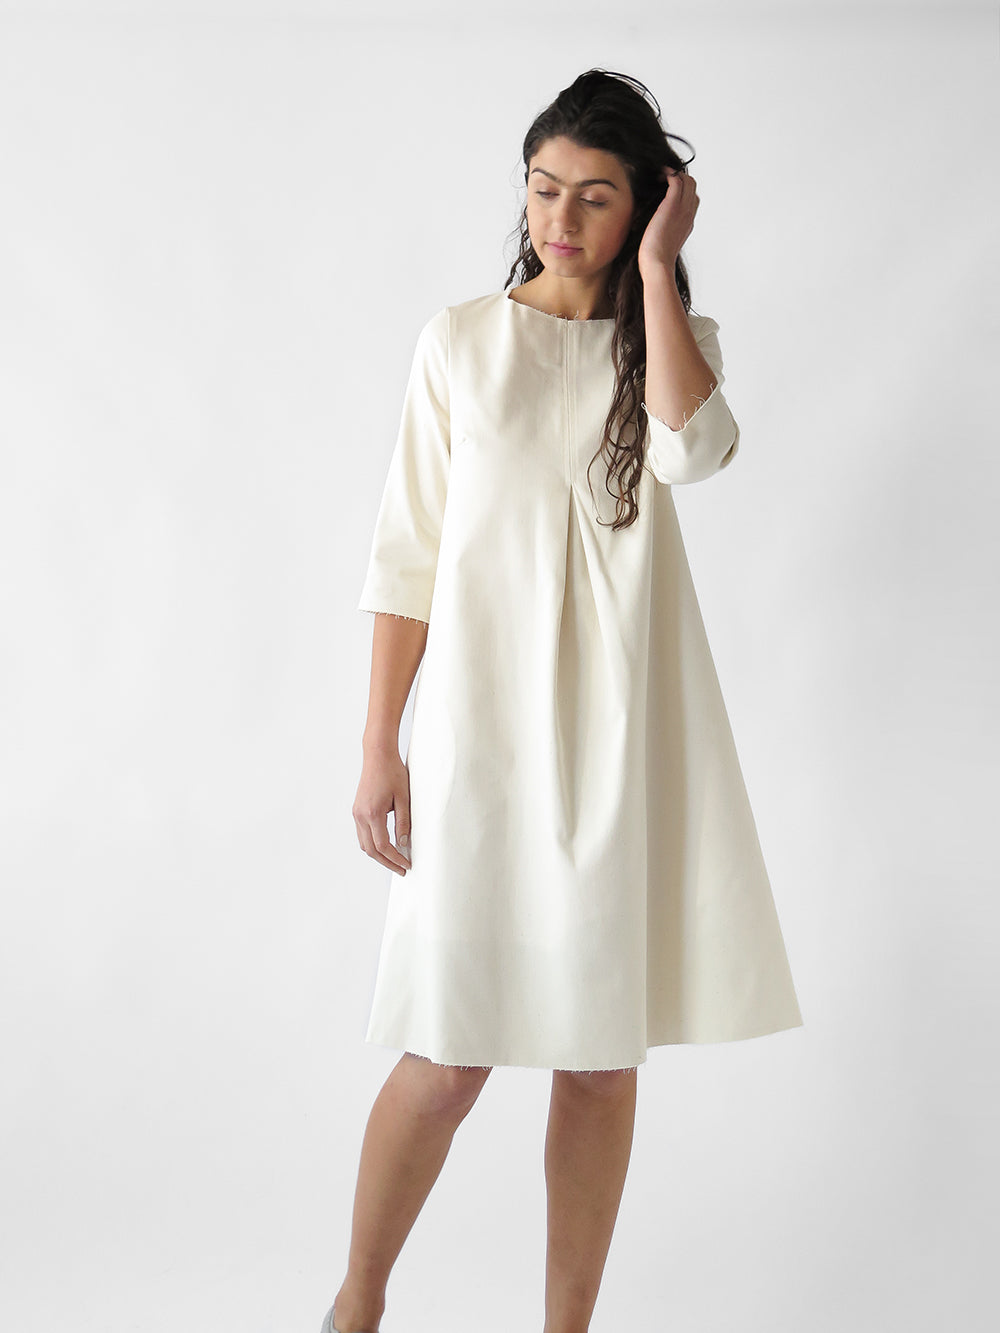 rye dress in natural